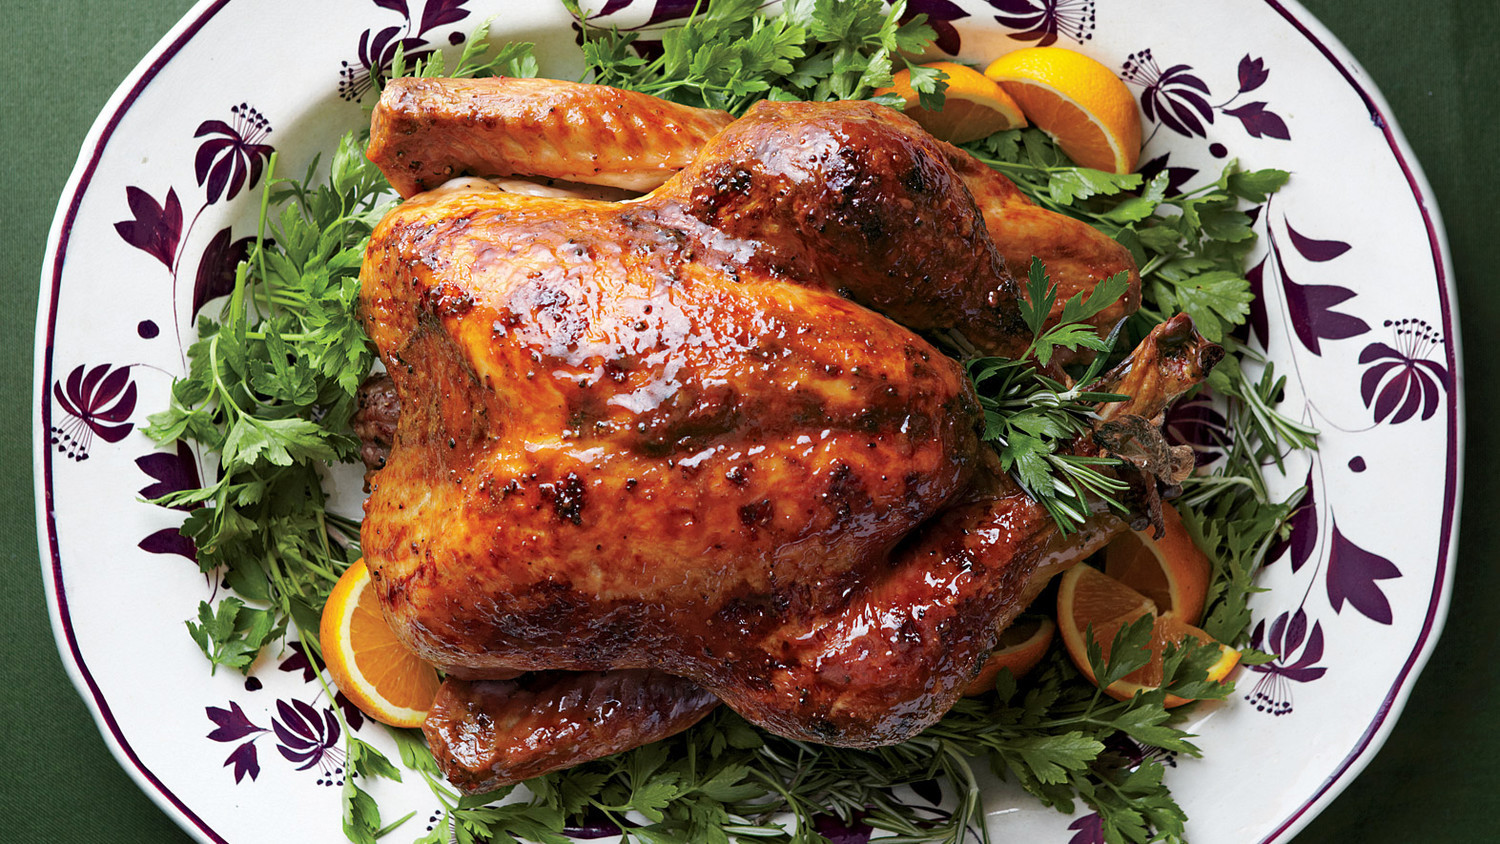 Pictures Of Turkey For Thanksgiving  38 Terrific Thanksgiving Turkey Recipes